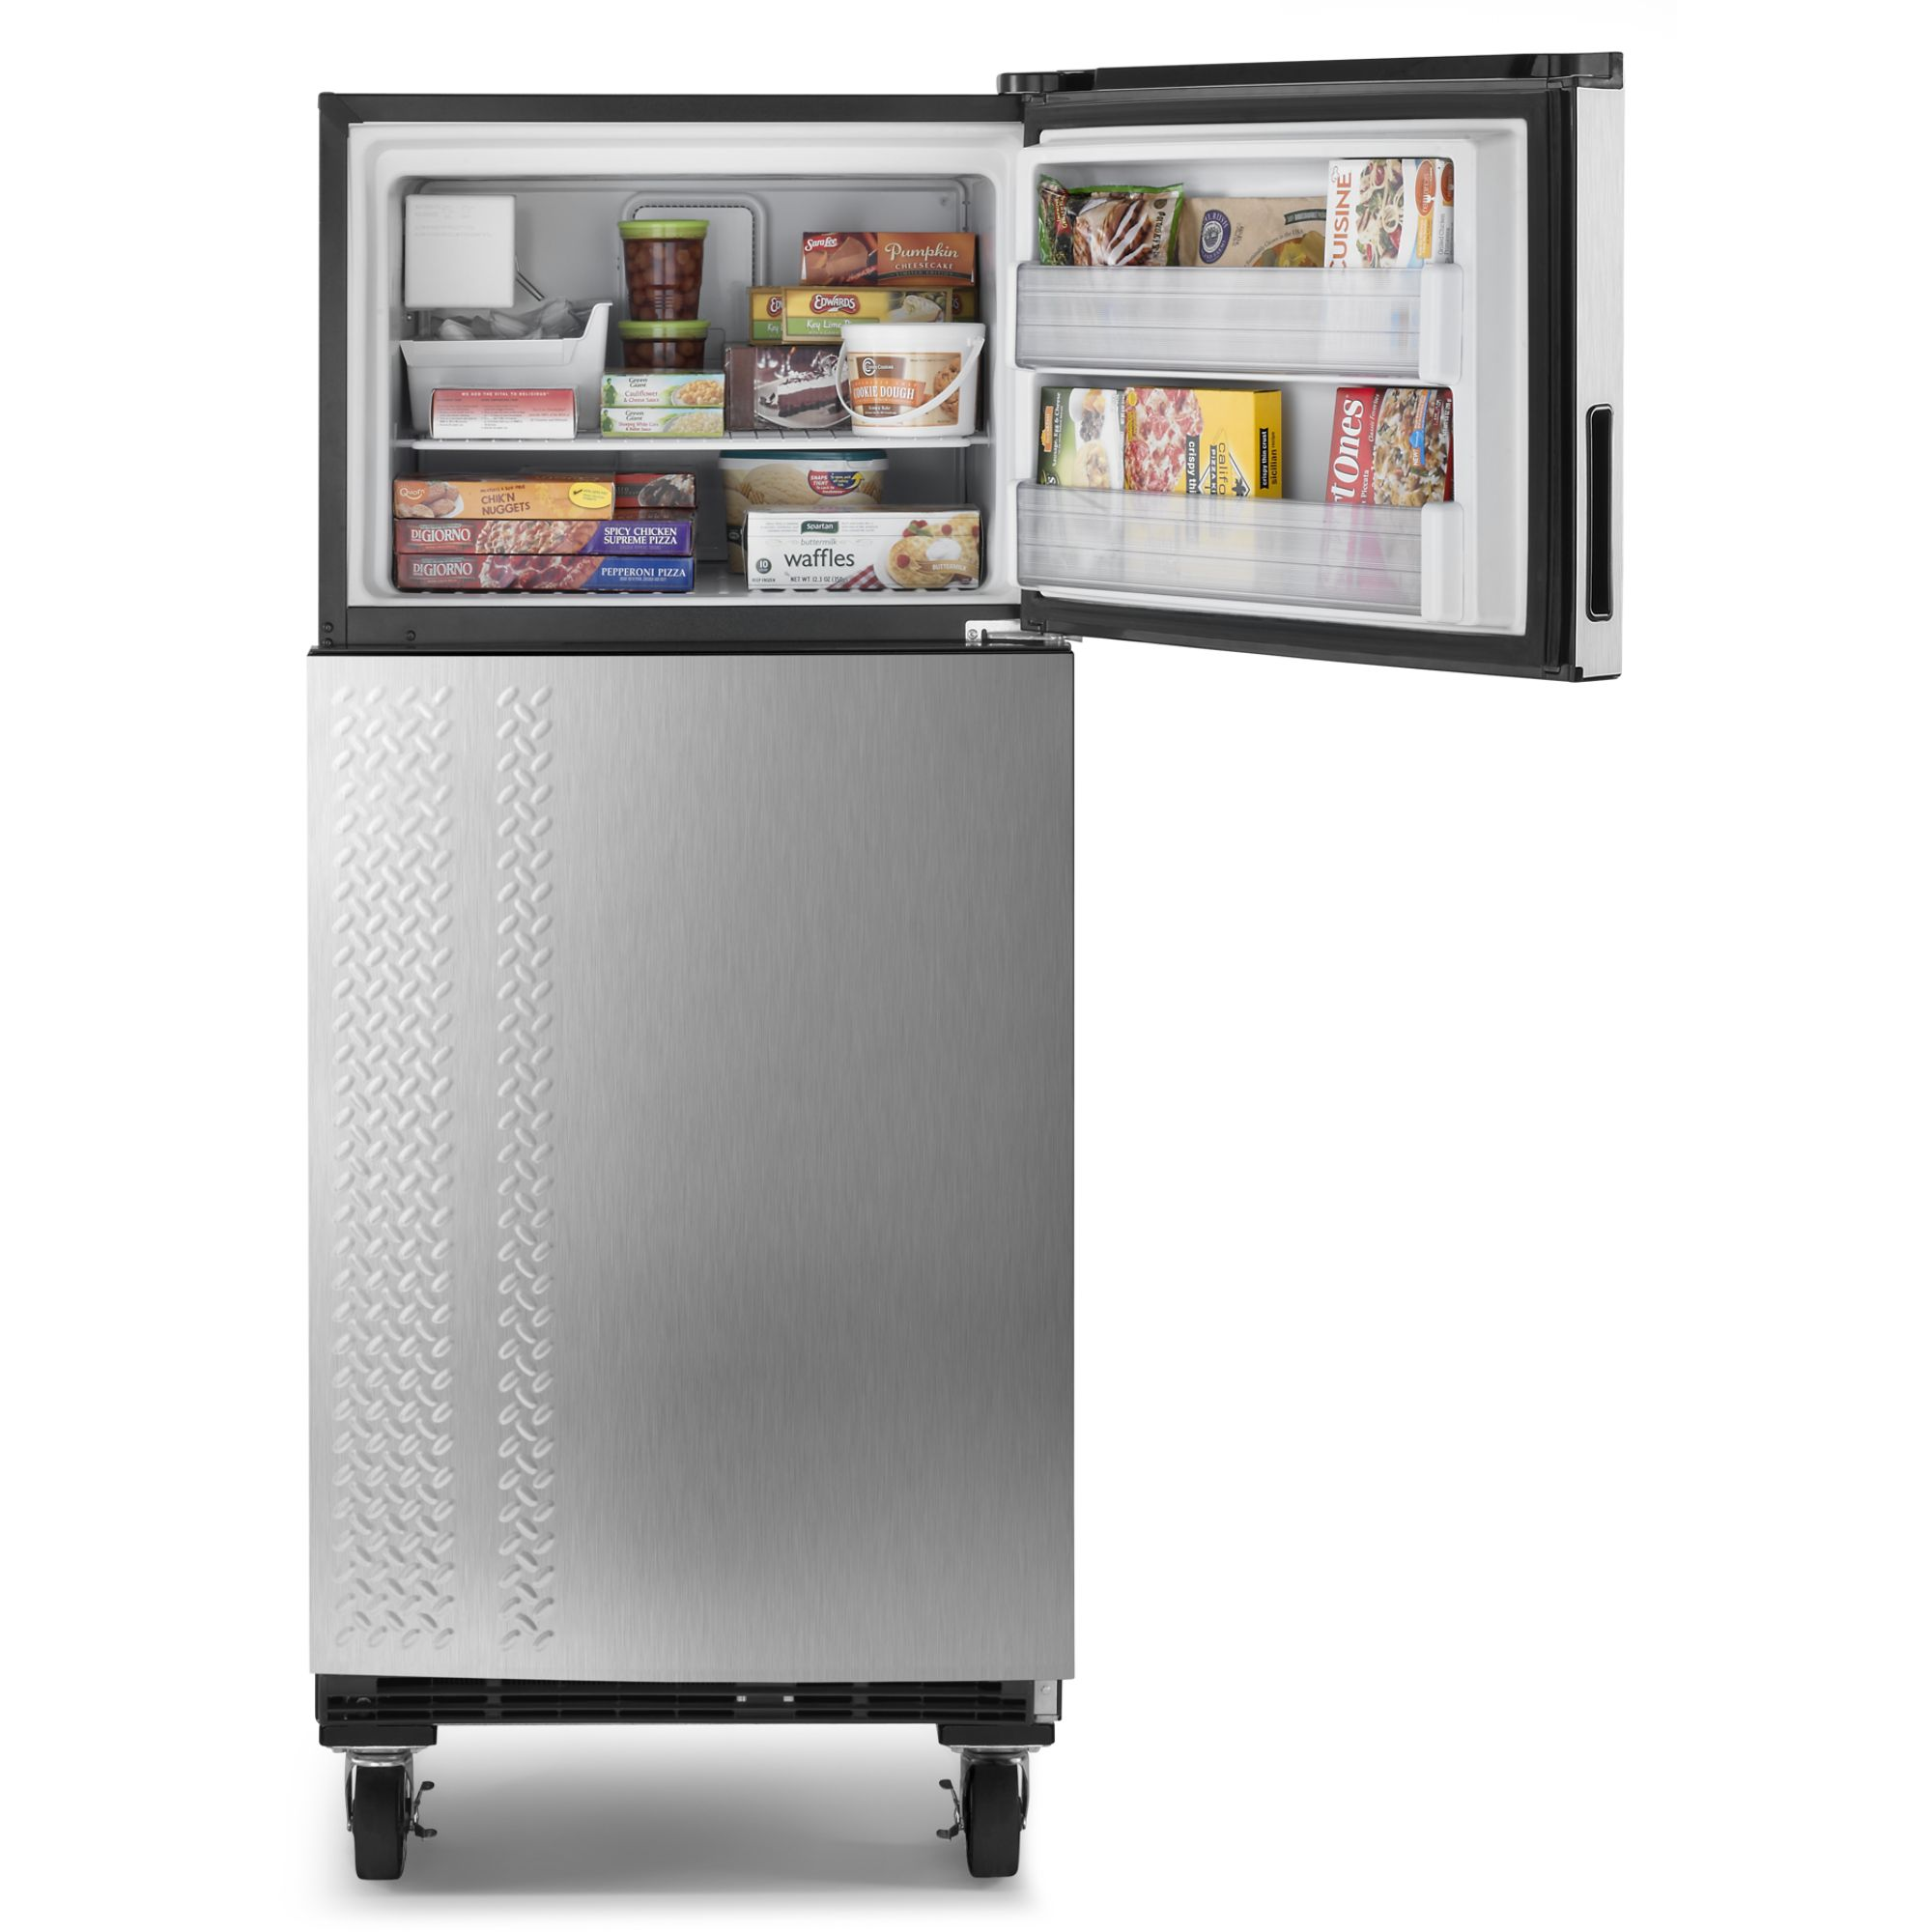 Gladiator GARF19XXYK 19 cu. ft. Chillerator Stainless Steel Garage Refrigerator